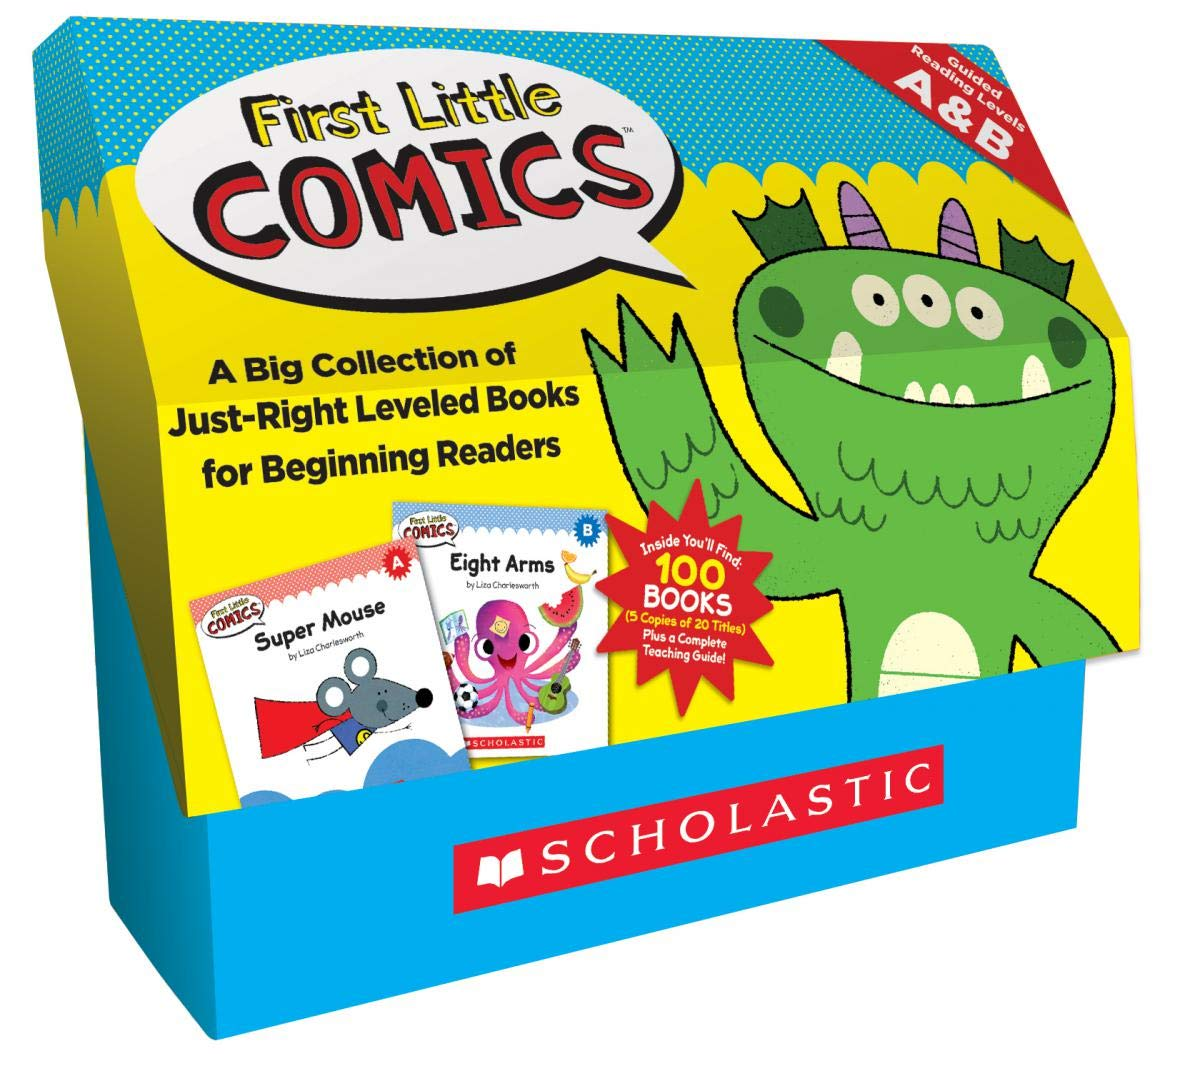 First Little Comics: Guided Reading Levels A B (Classroom Set): A Big Collection of Just-Right Leveled Books for Beginning Readers